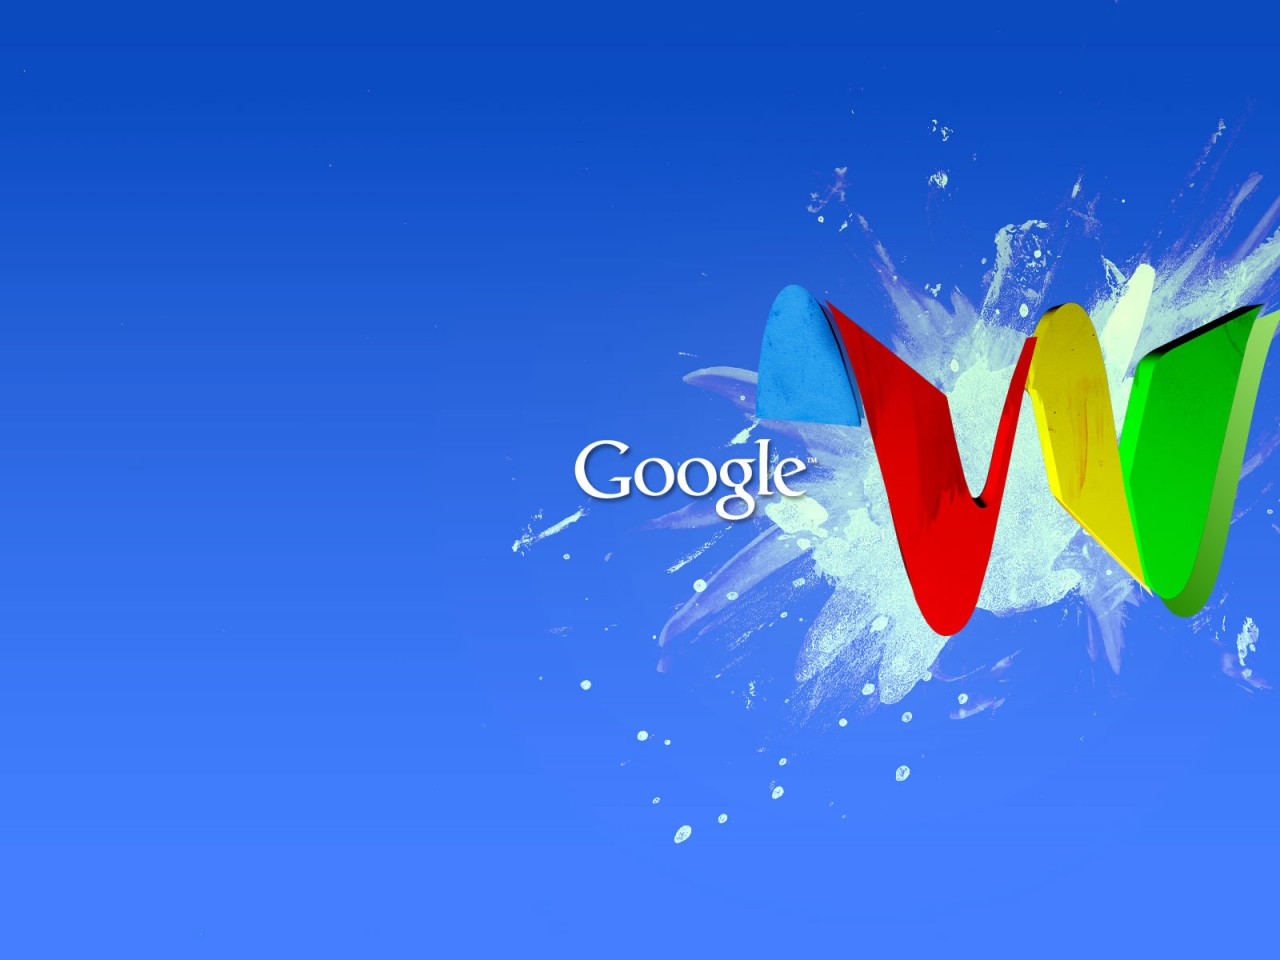 Google Wave for 1280 x 960 resolution